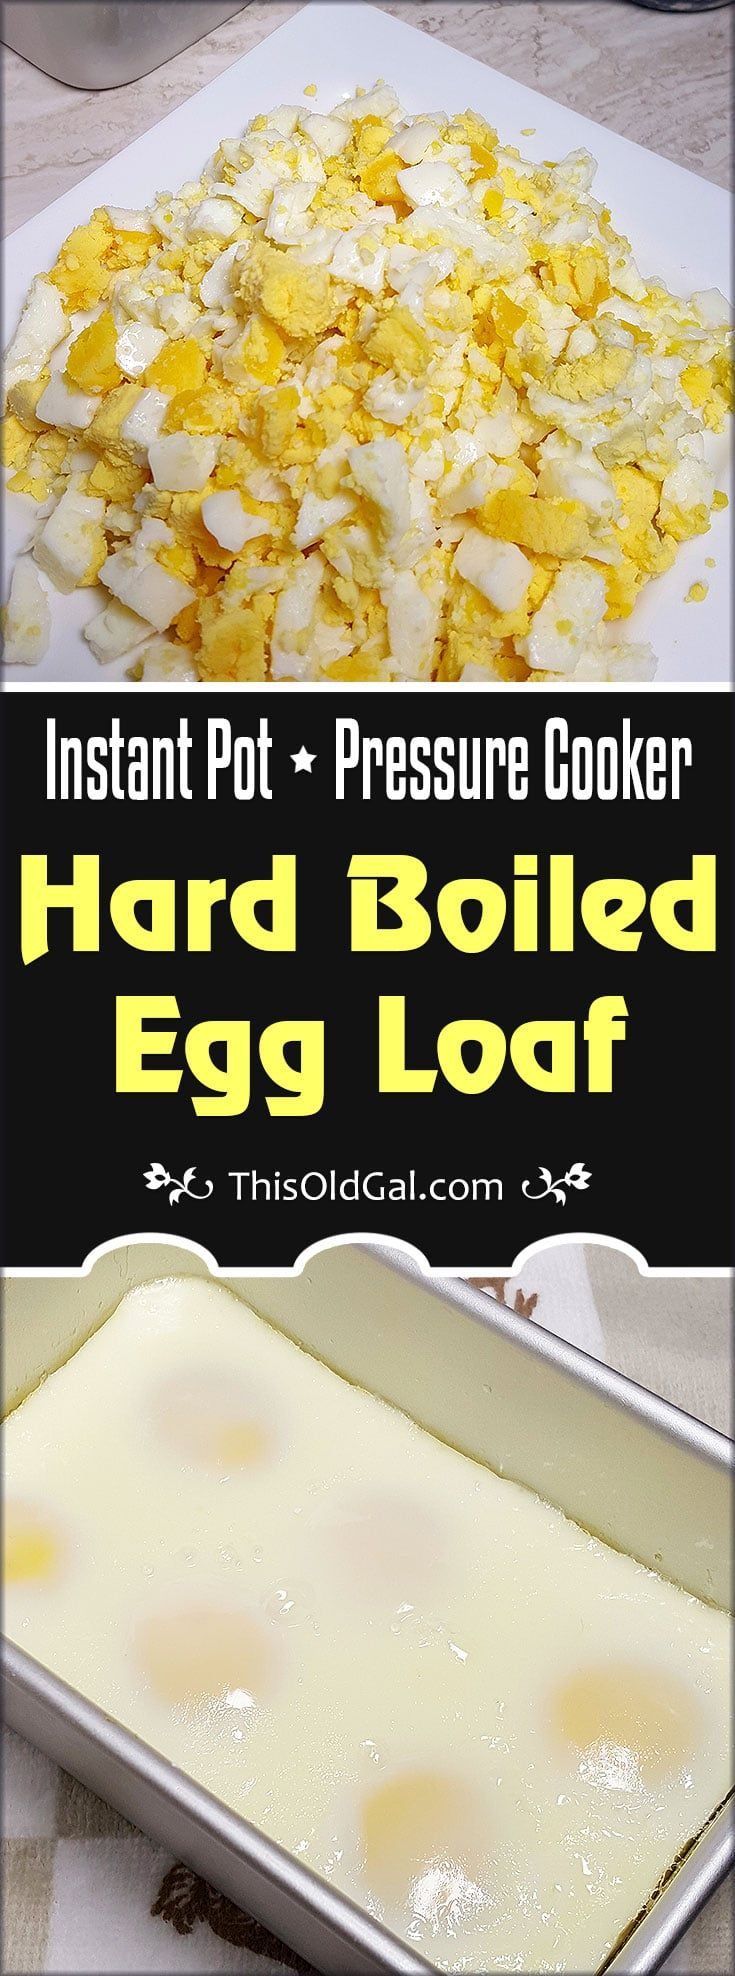 This Instant Pot Pressure Cooker Hard Boiled Egg Loaf Recipe is the perfect method for making Egg Salad.  It will change your life and rock your World. via @thisoldgalcooks